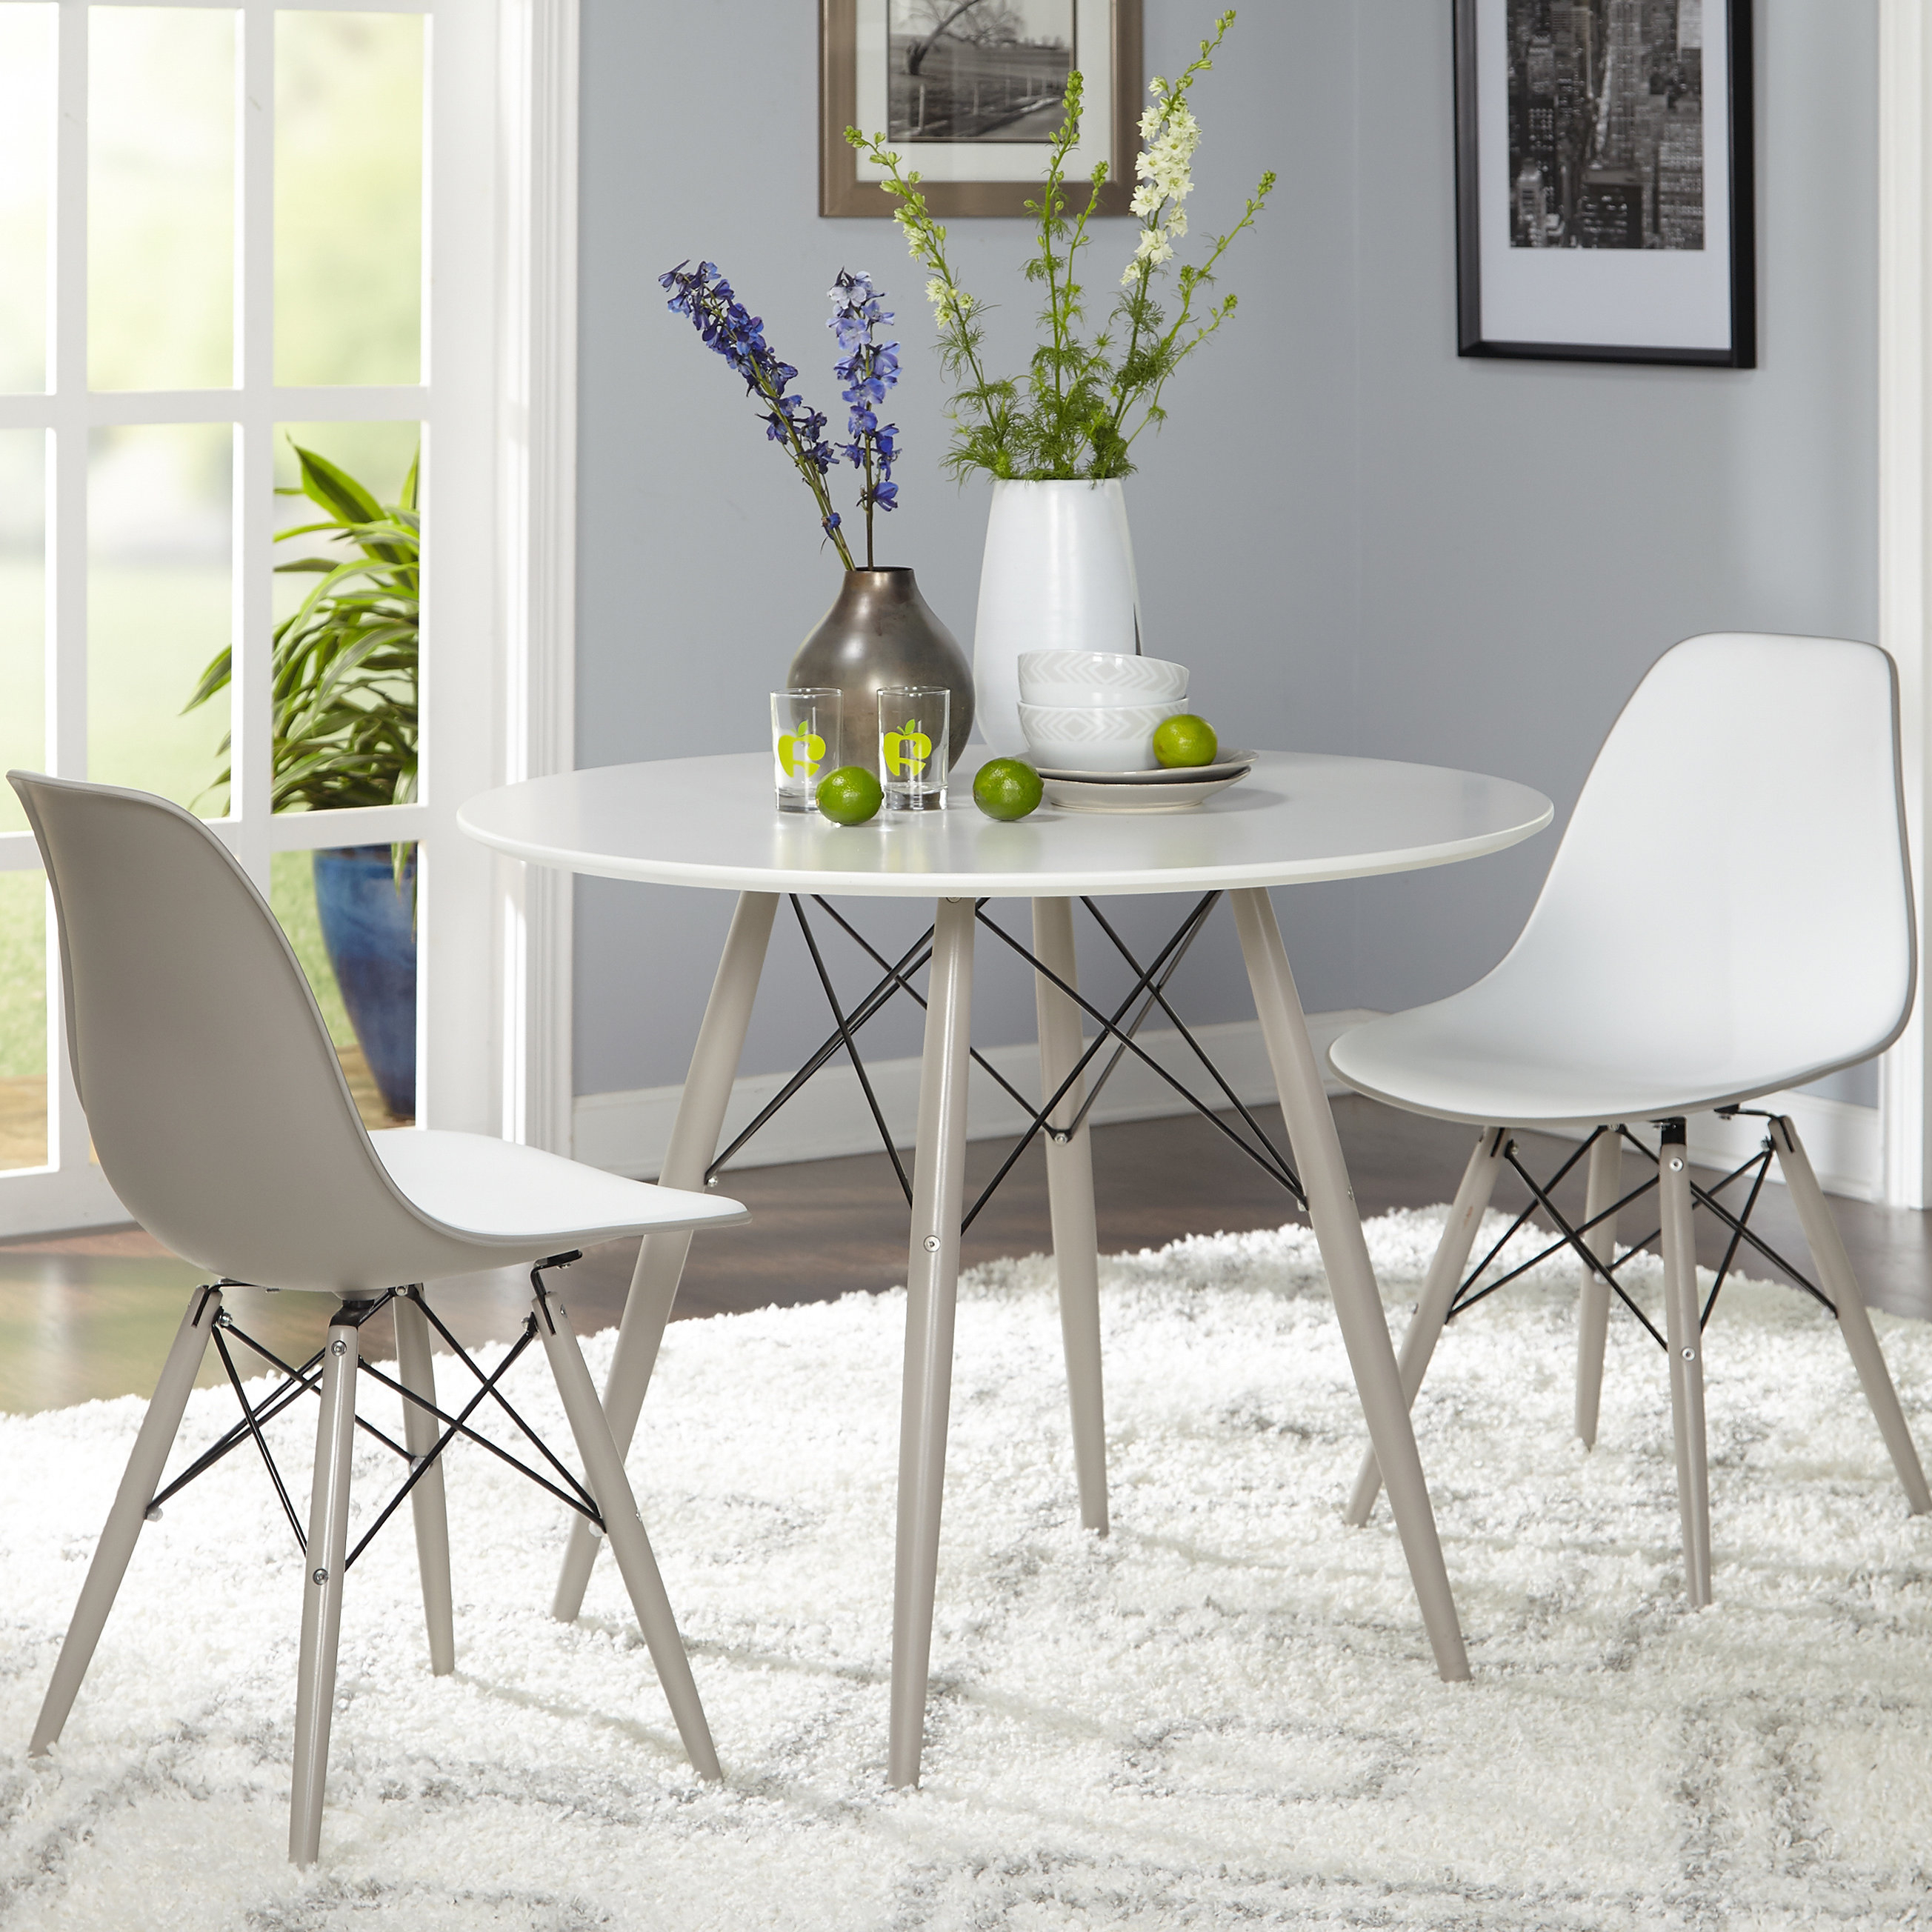 Widely Used Langley Street Richardson 3 Piece Dining Set With Travon 5 Piece Dining Sets (View 19 of 20)